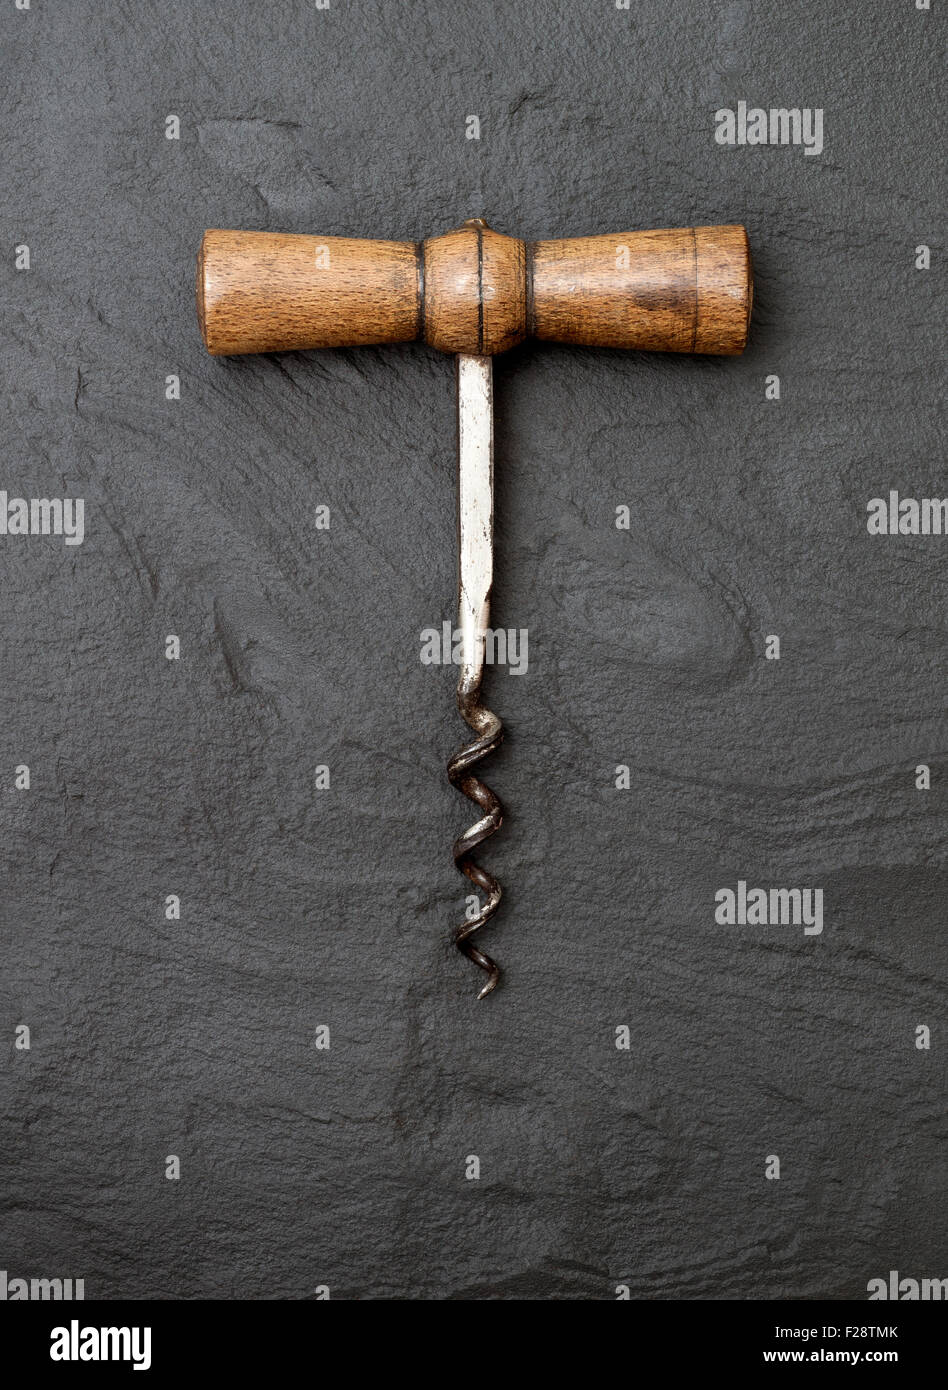 Vintage Corkscrew with Wooden Handle - Stock Image